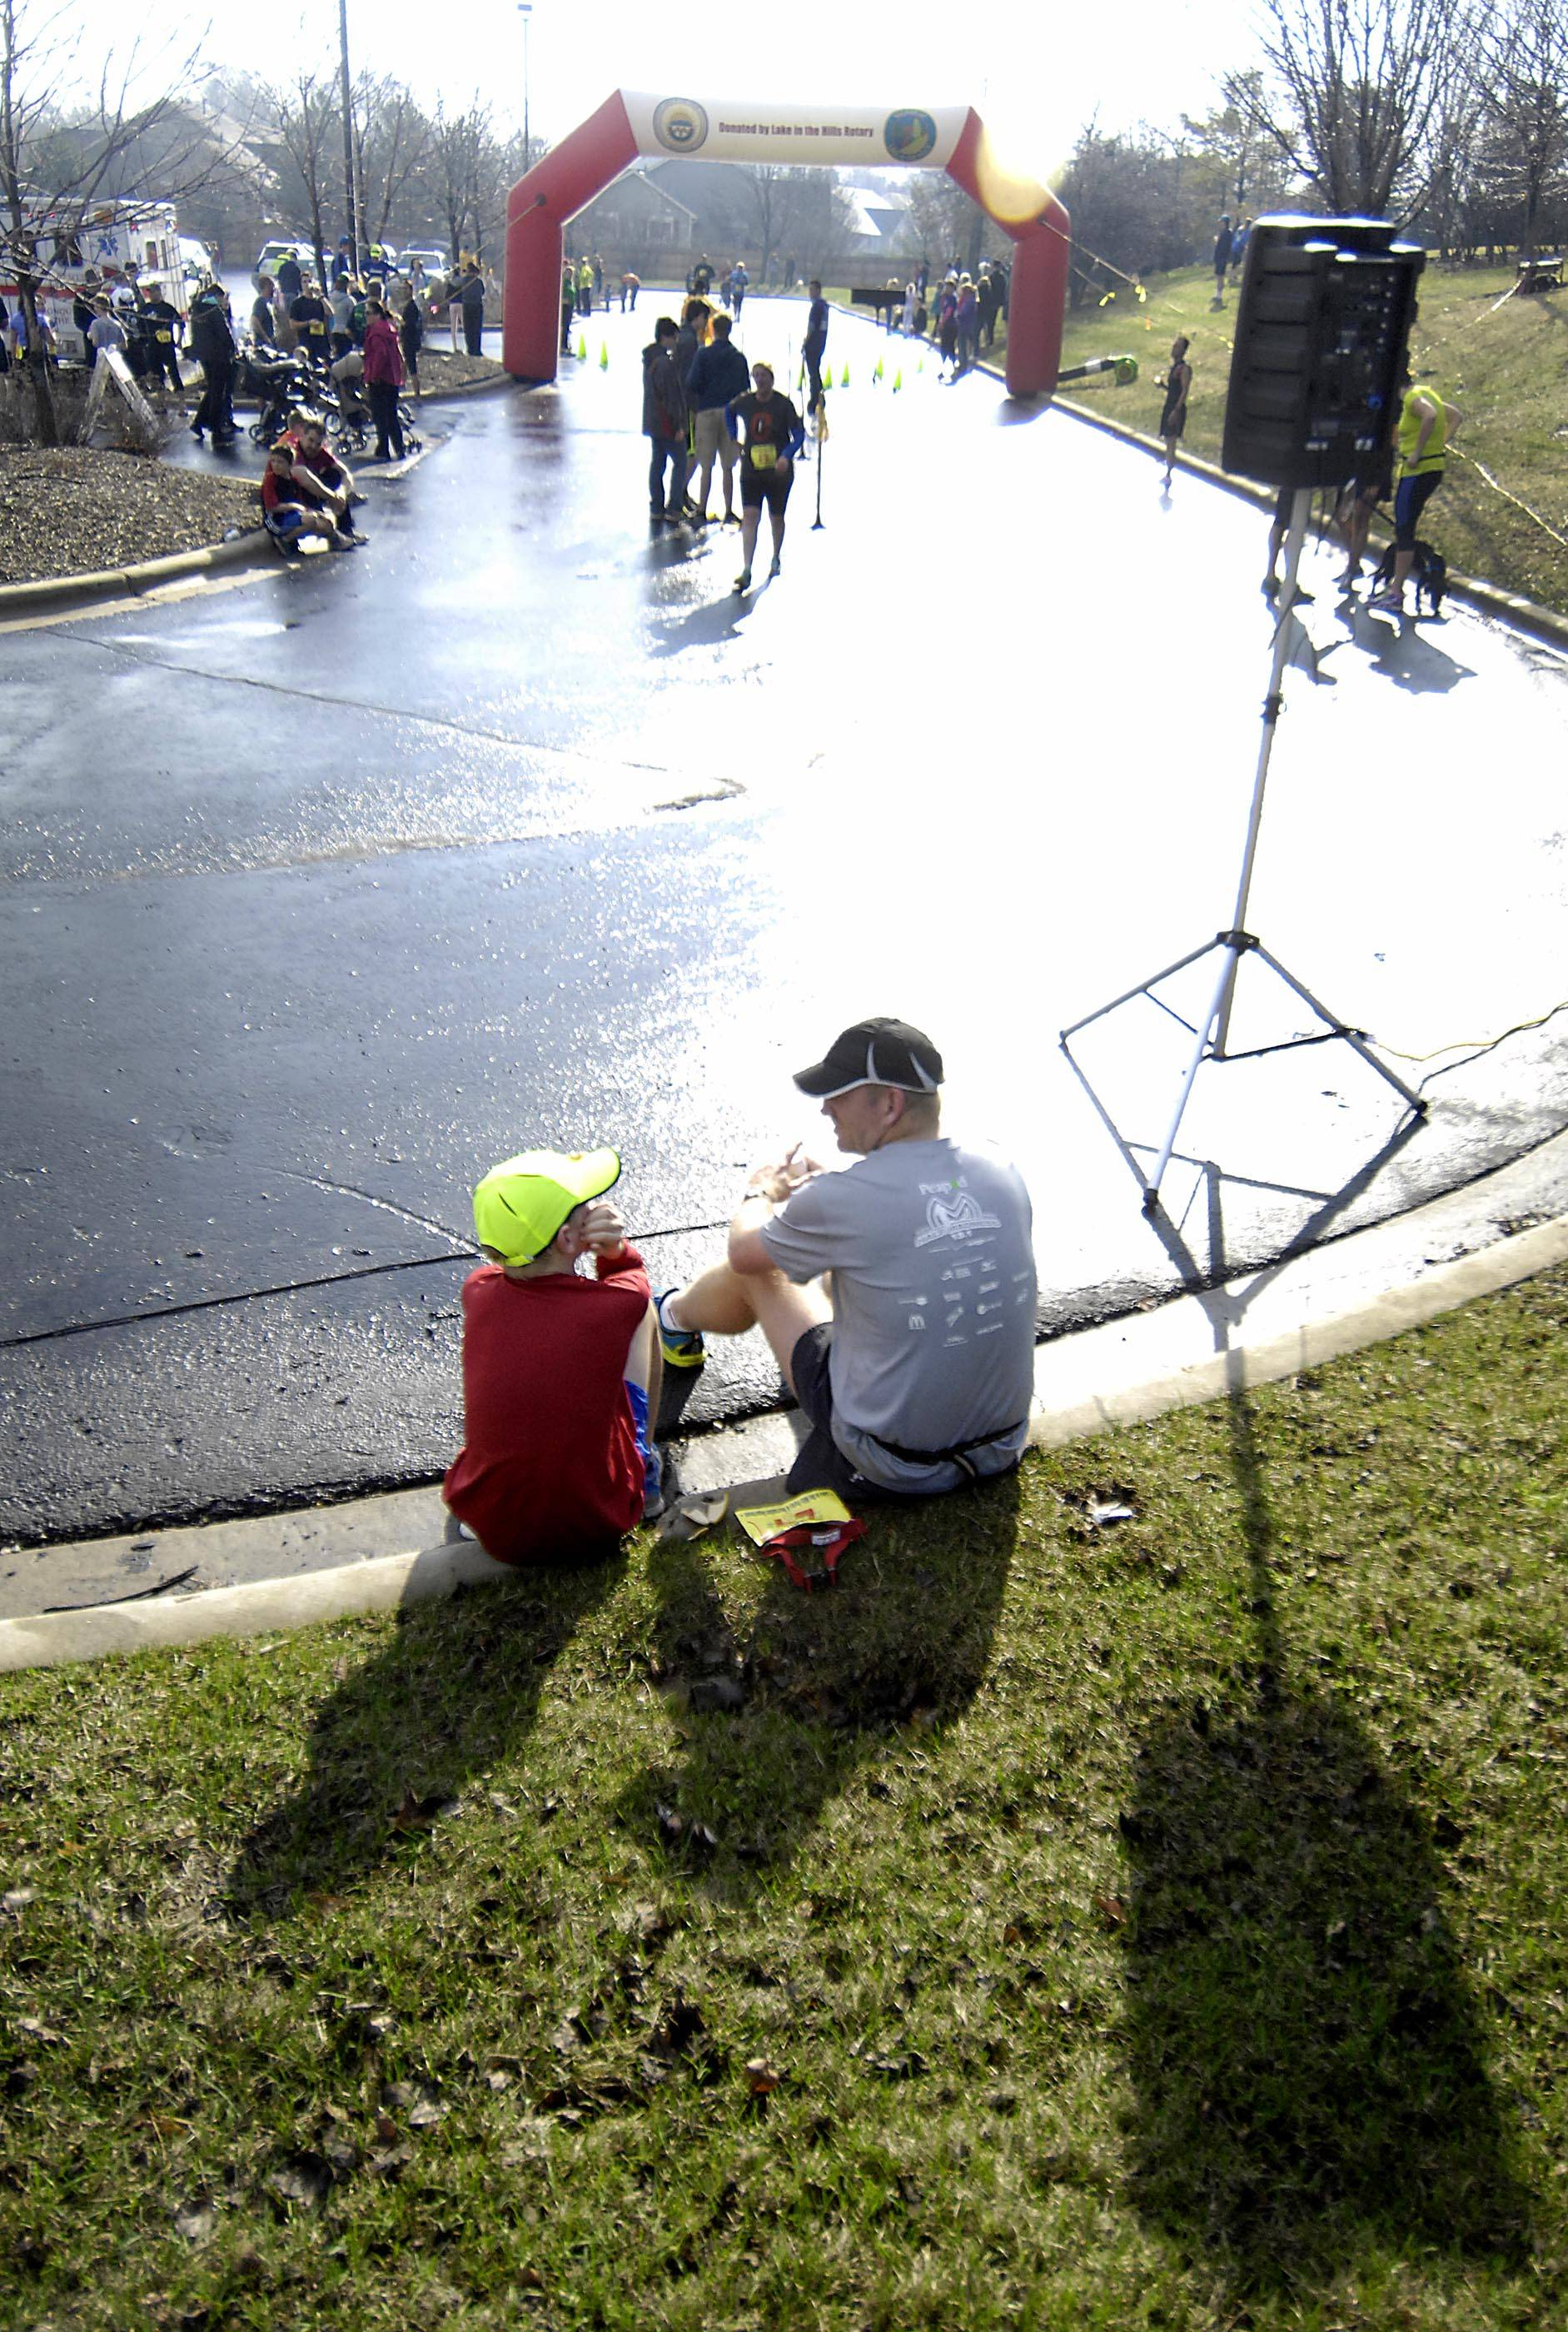 Jerry Cravens, of Algonquin, talks with his son Owen, 10, near the finish line Sunday morning at the 15th Run Thru The Hills 5K and 10K road races in Lake in the Hills. They both ran the 5K and Owen finished a minute faster than his dad.